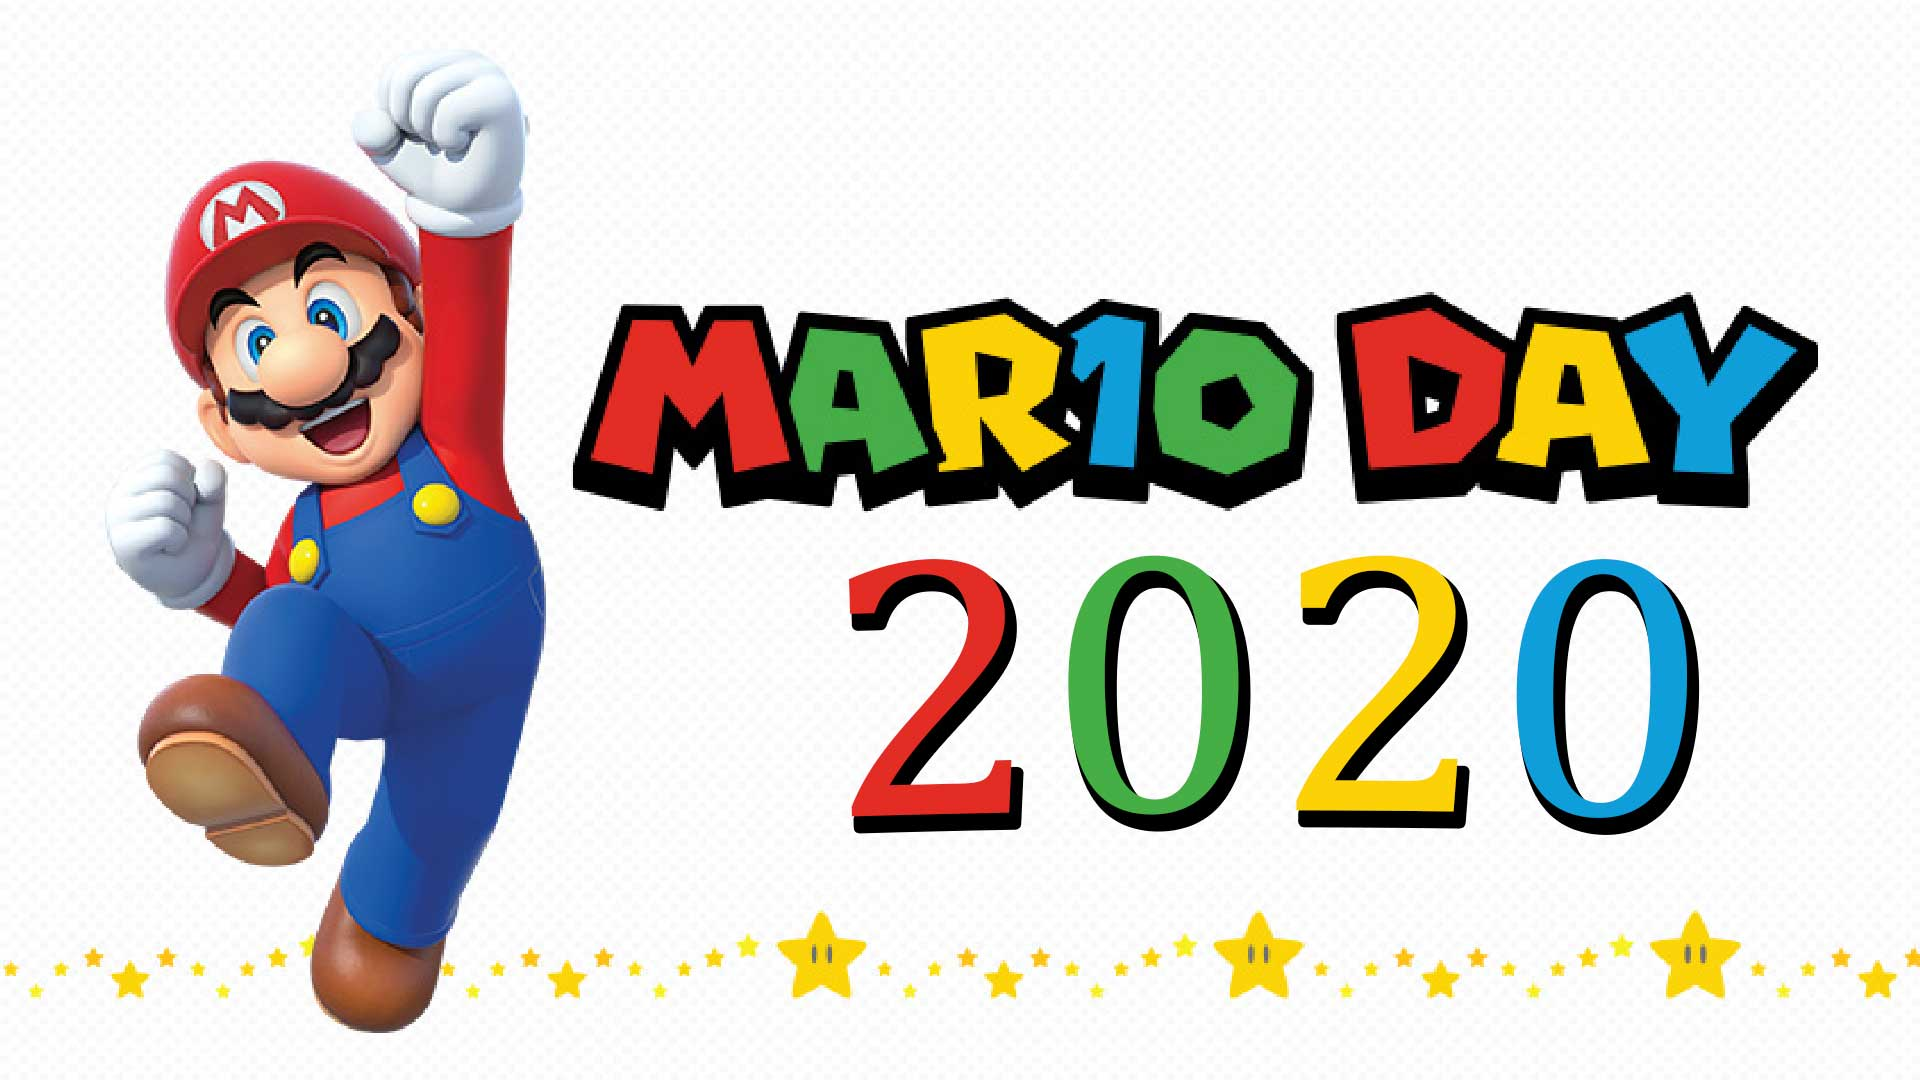 mariotag mar10 day mario day 2020